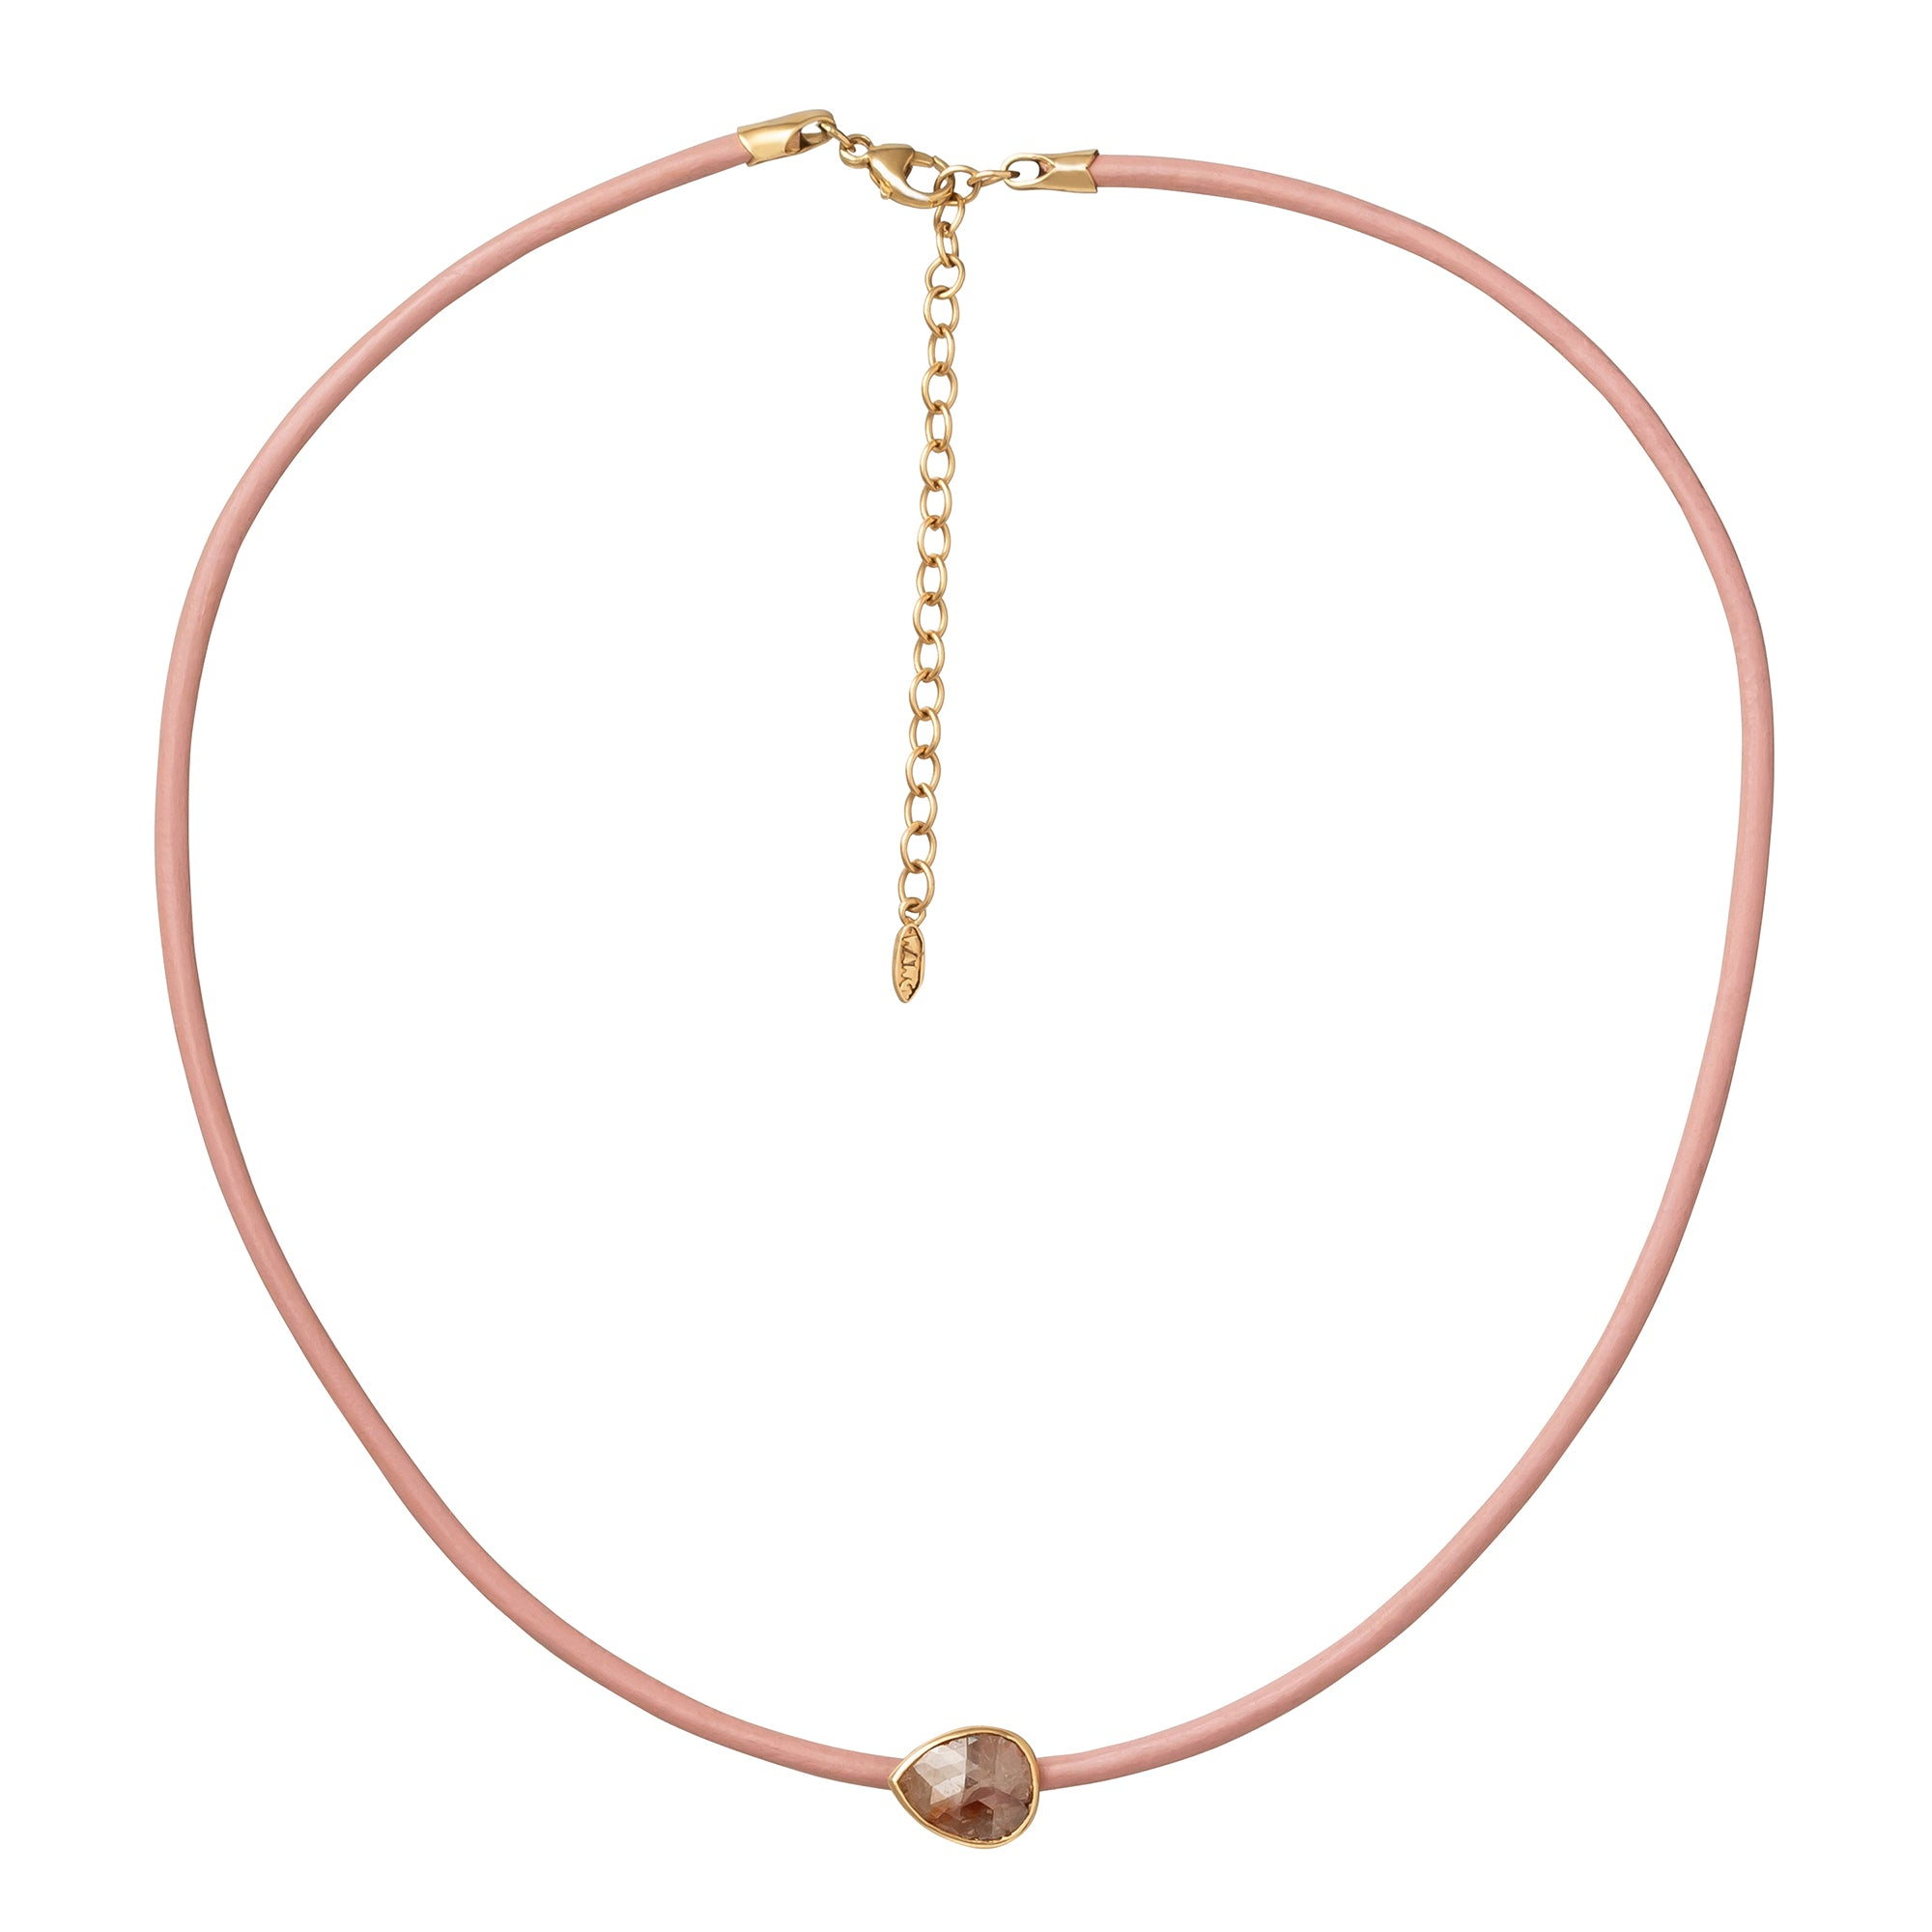 Xiao Wang Stardust Choker - Pink Leather - Necklaces - Broken English Jewelry